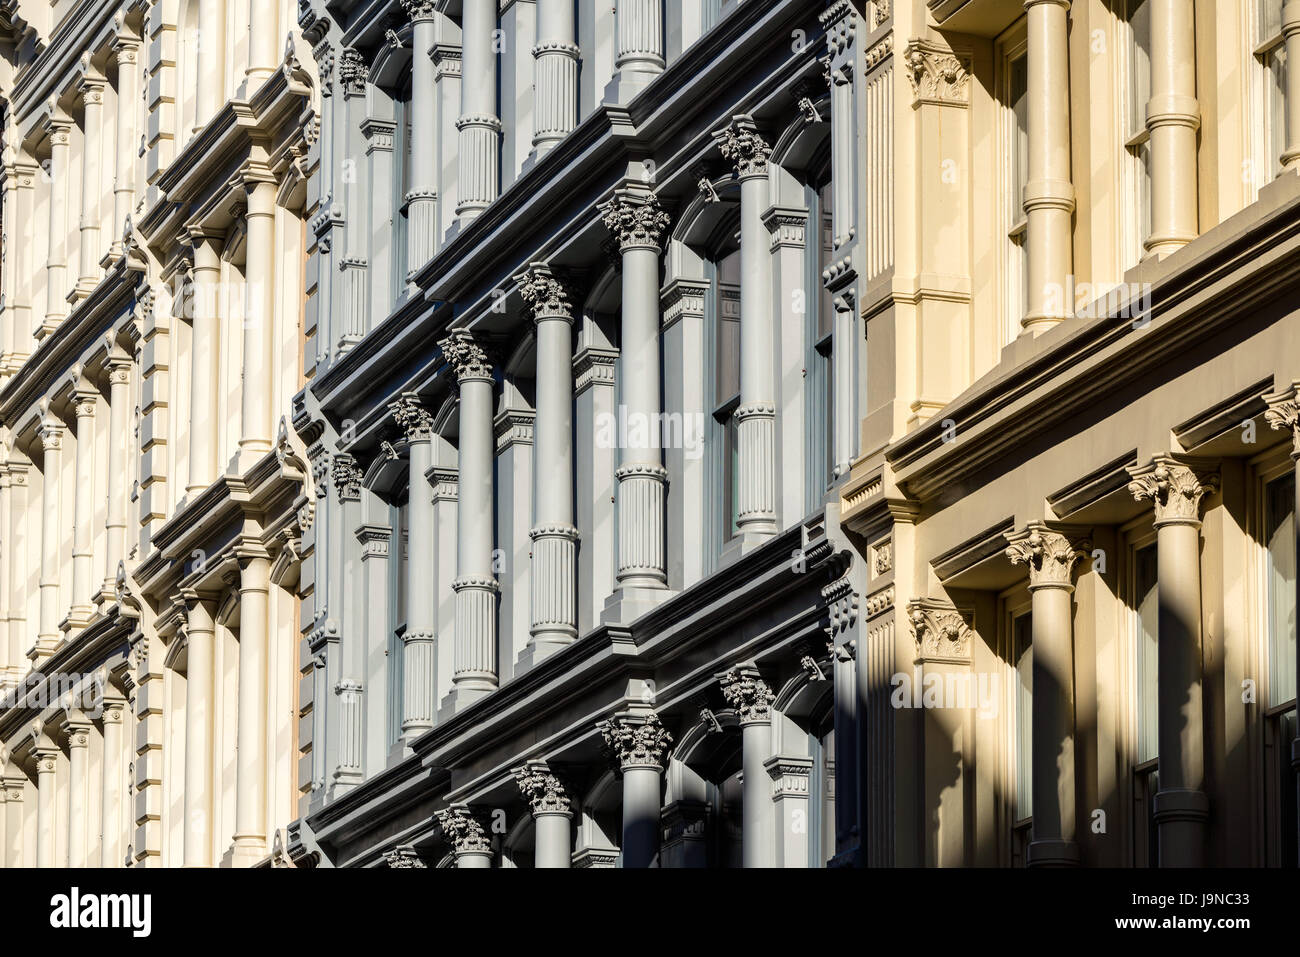 Cast iron facades and ornamentation. Nineteenth century buildings in Manhattan's Soho neighborhood. New York - Stock Image